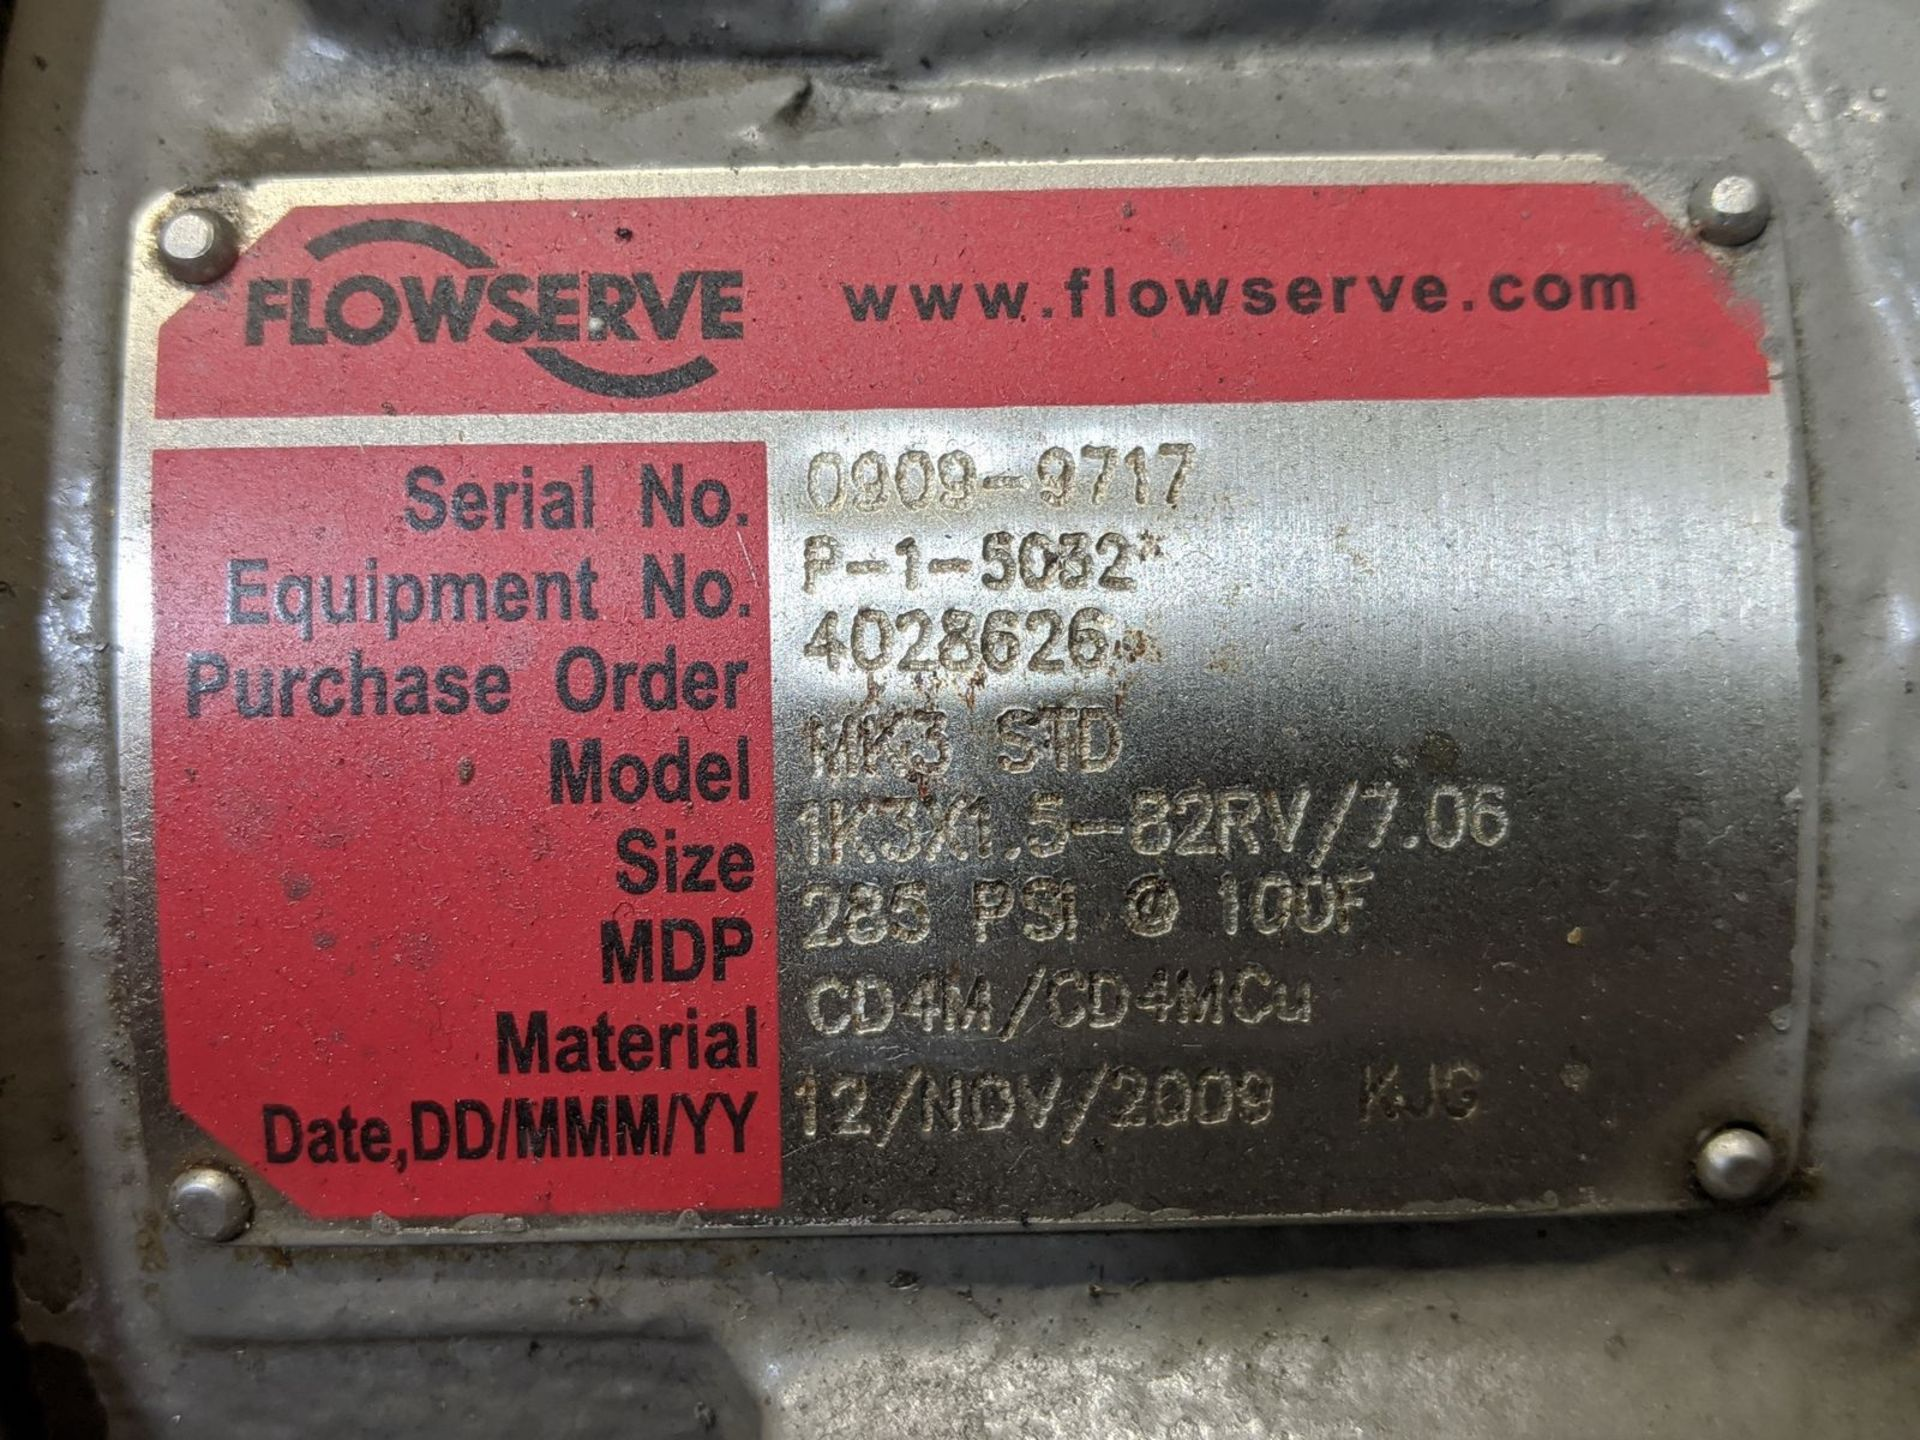 Flowserve Model MK3STD 15 HP Centrifugal Pump - Image 2 of 3